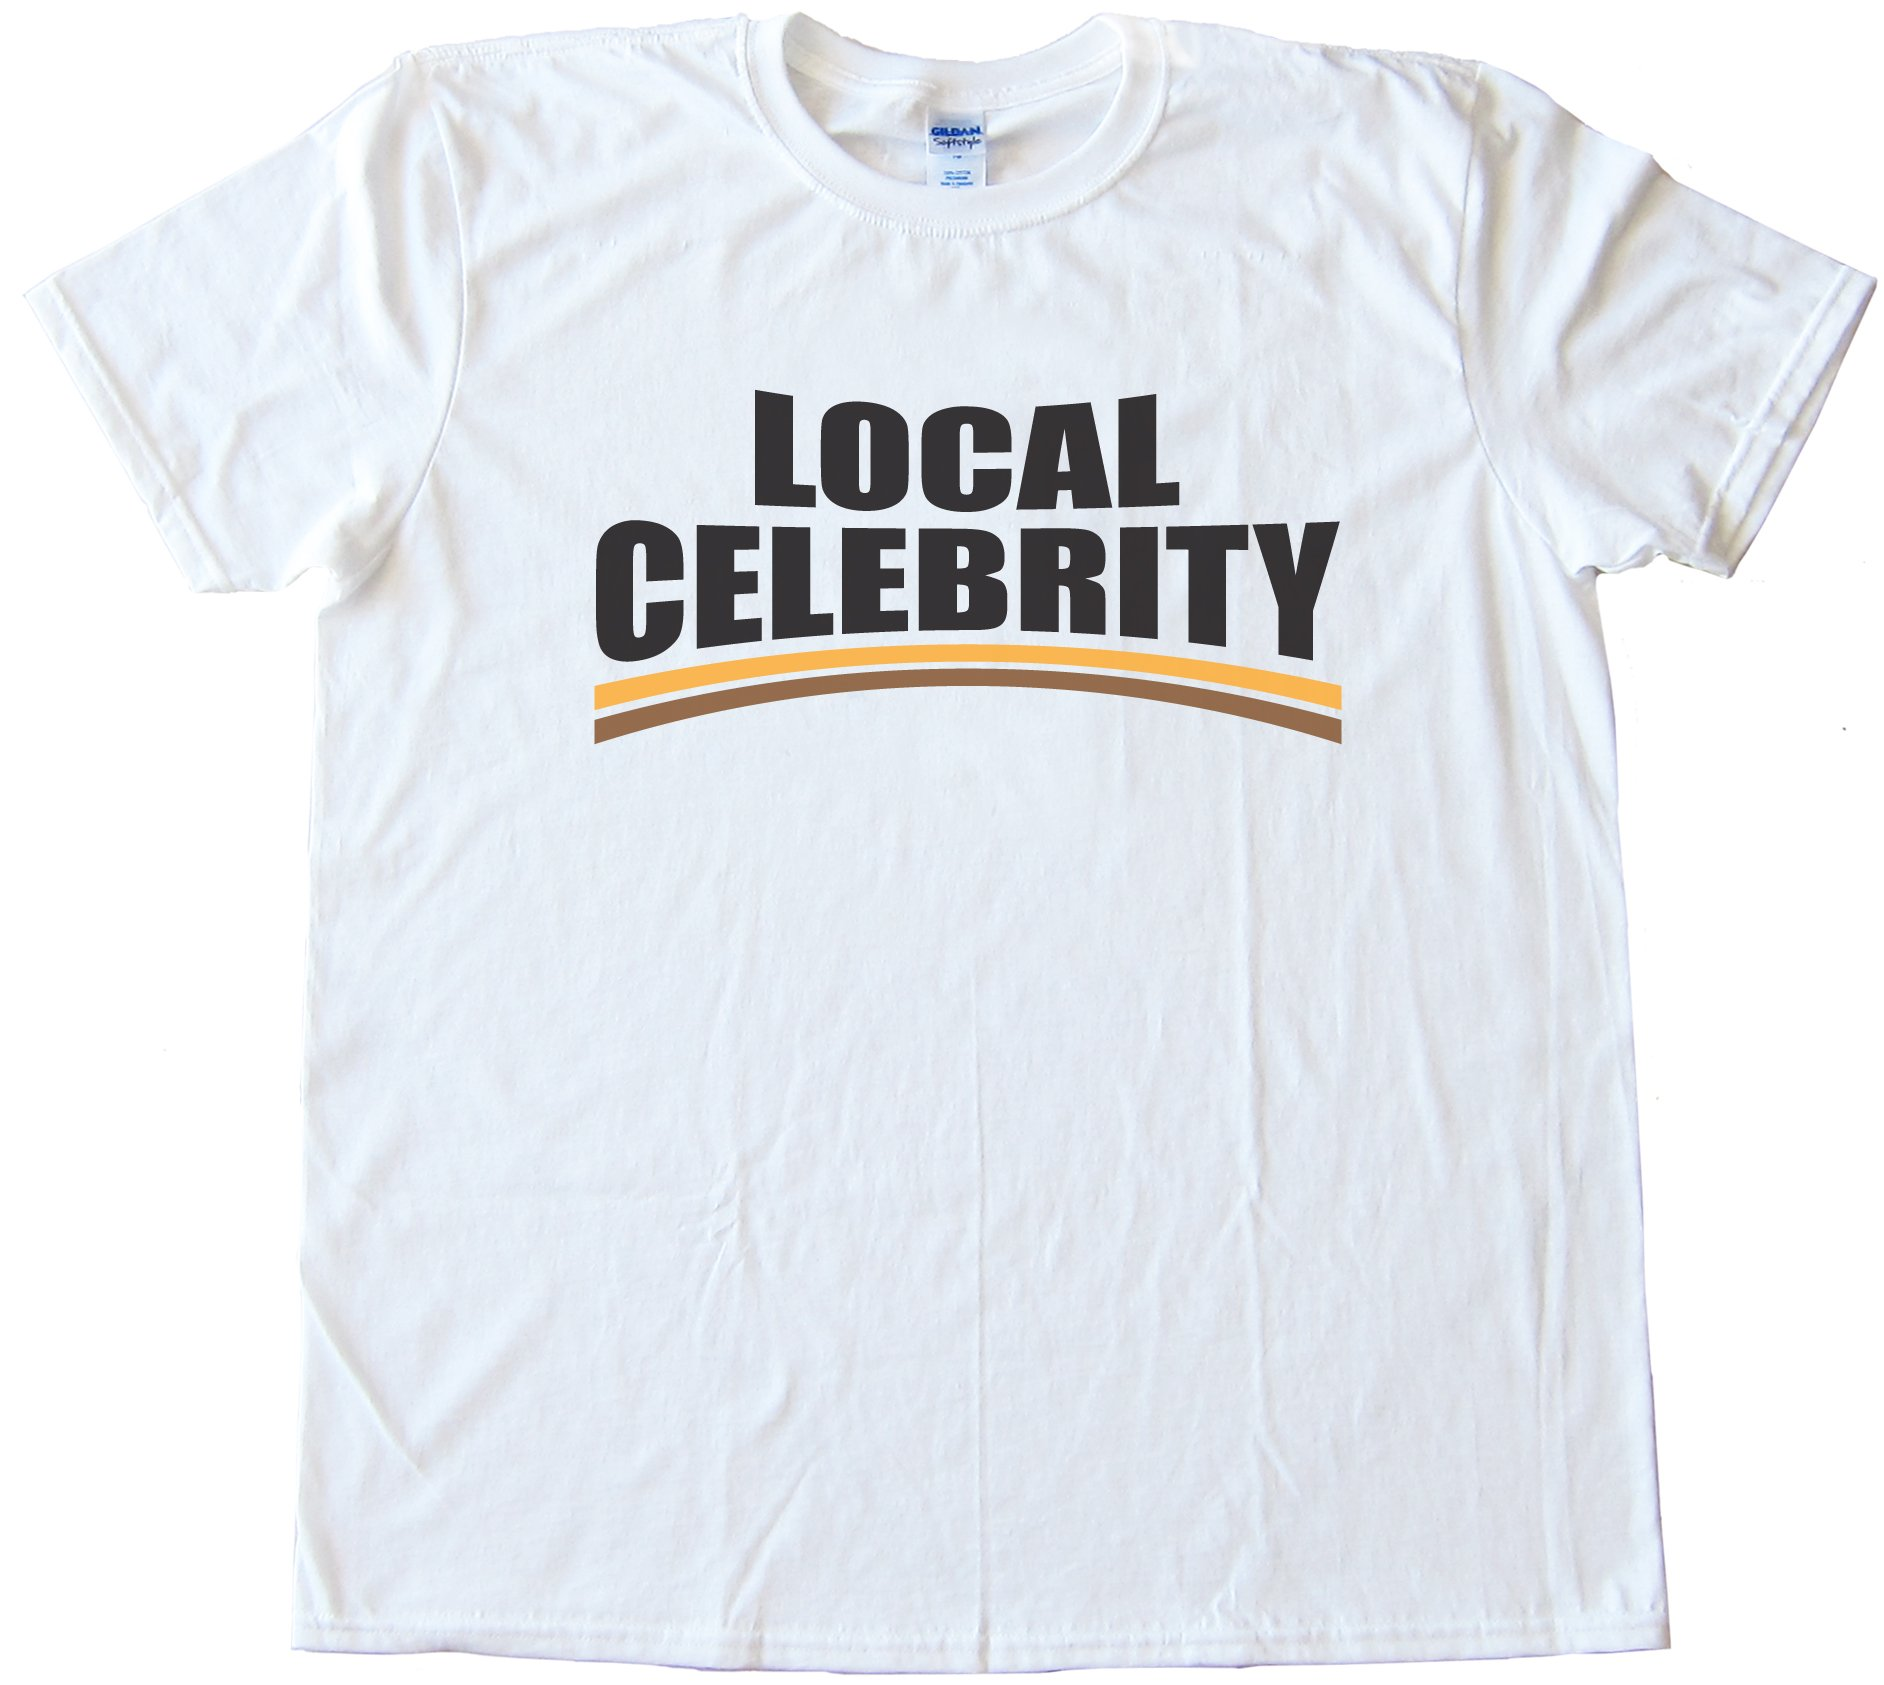 Local Celebrity Tee Shirt